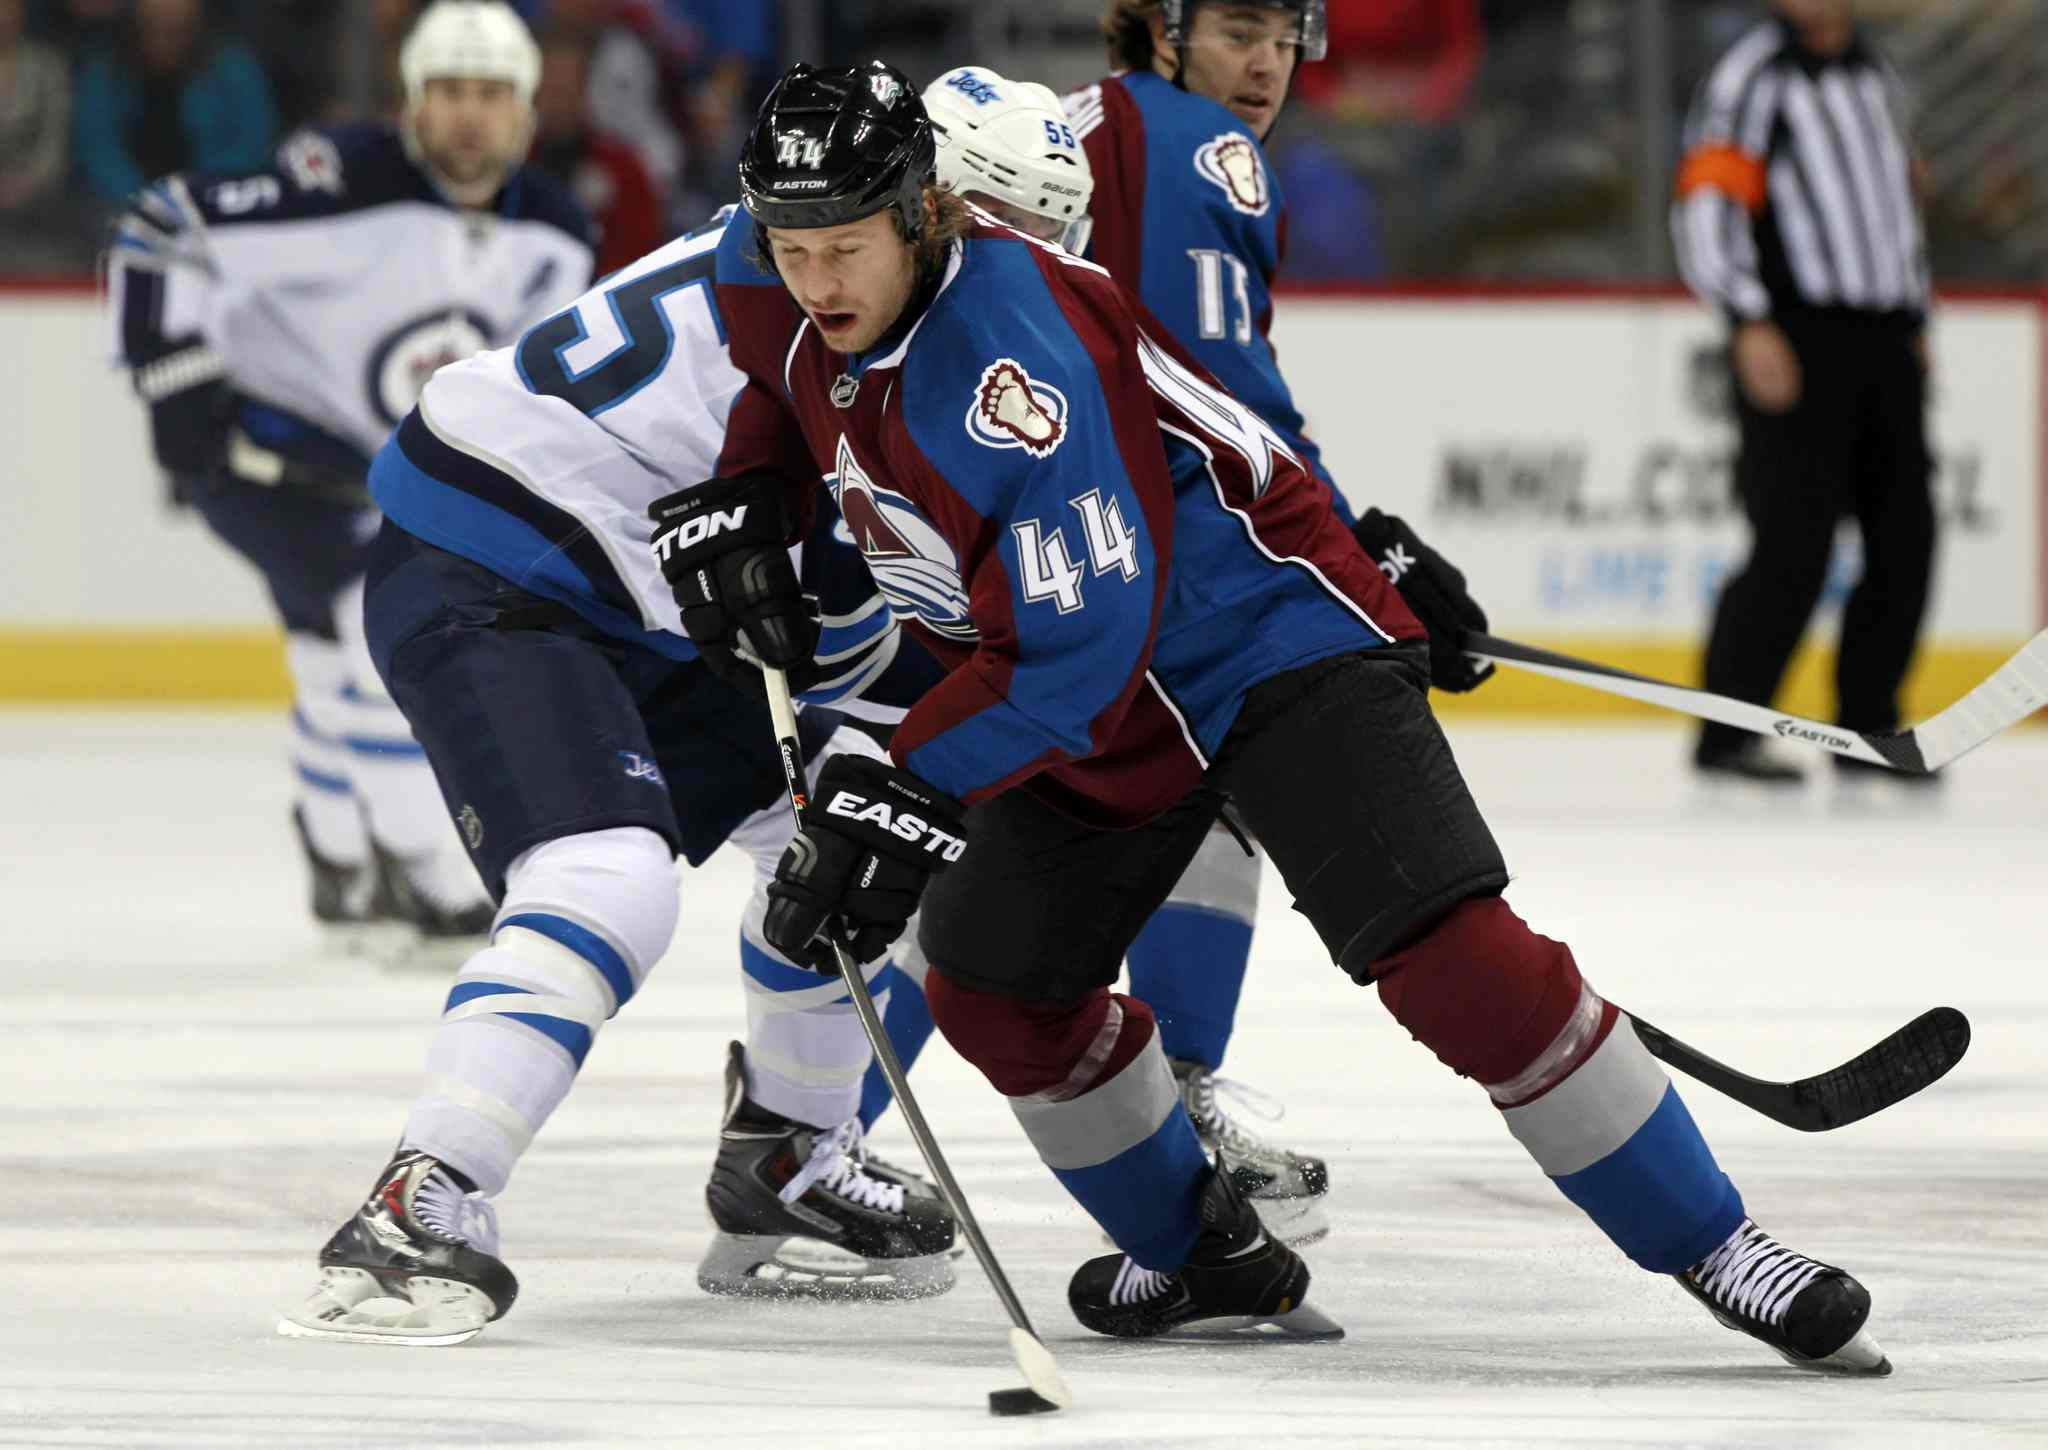 Avalanche defenceman Ryan Wilson (front) picks up the loose puck in the first period.